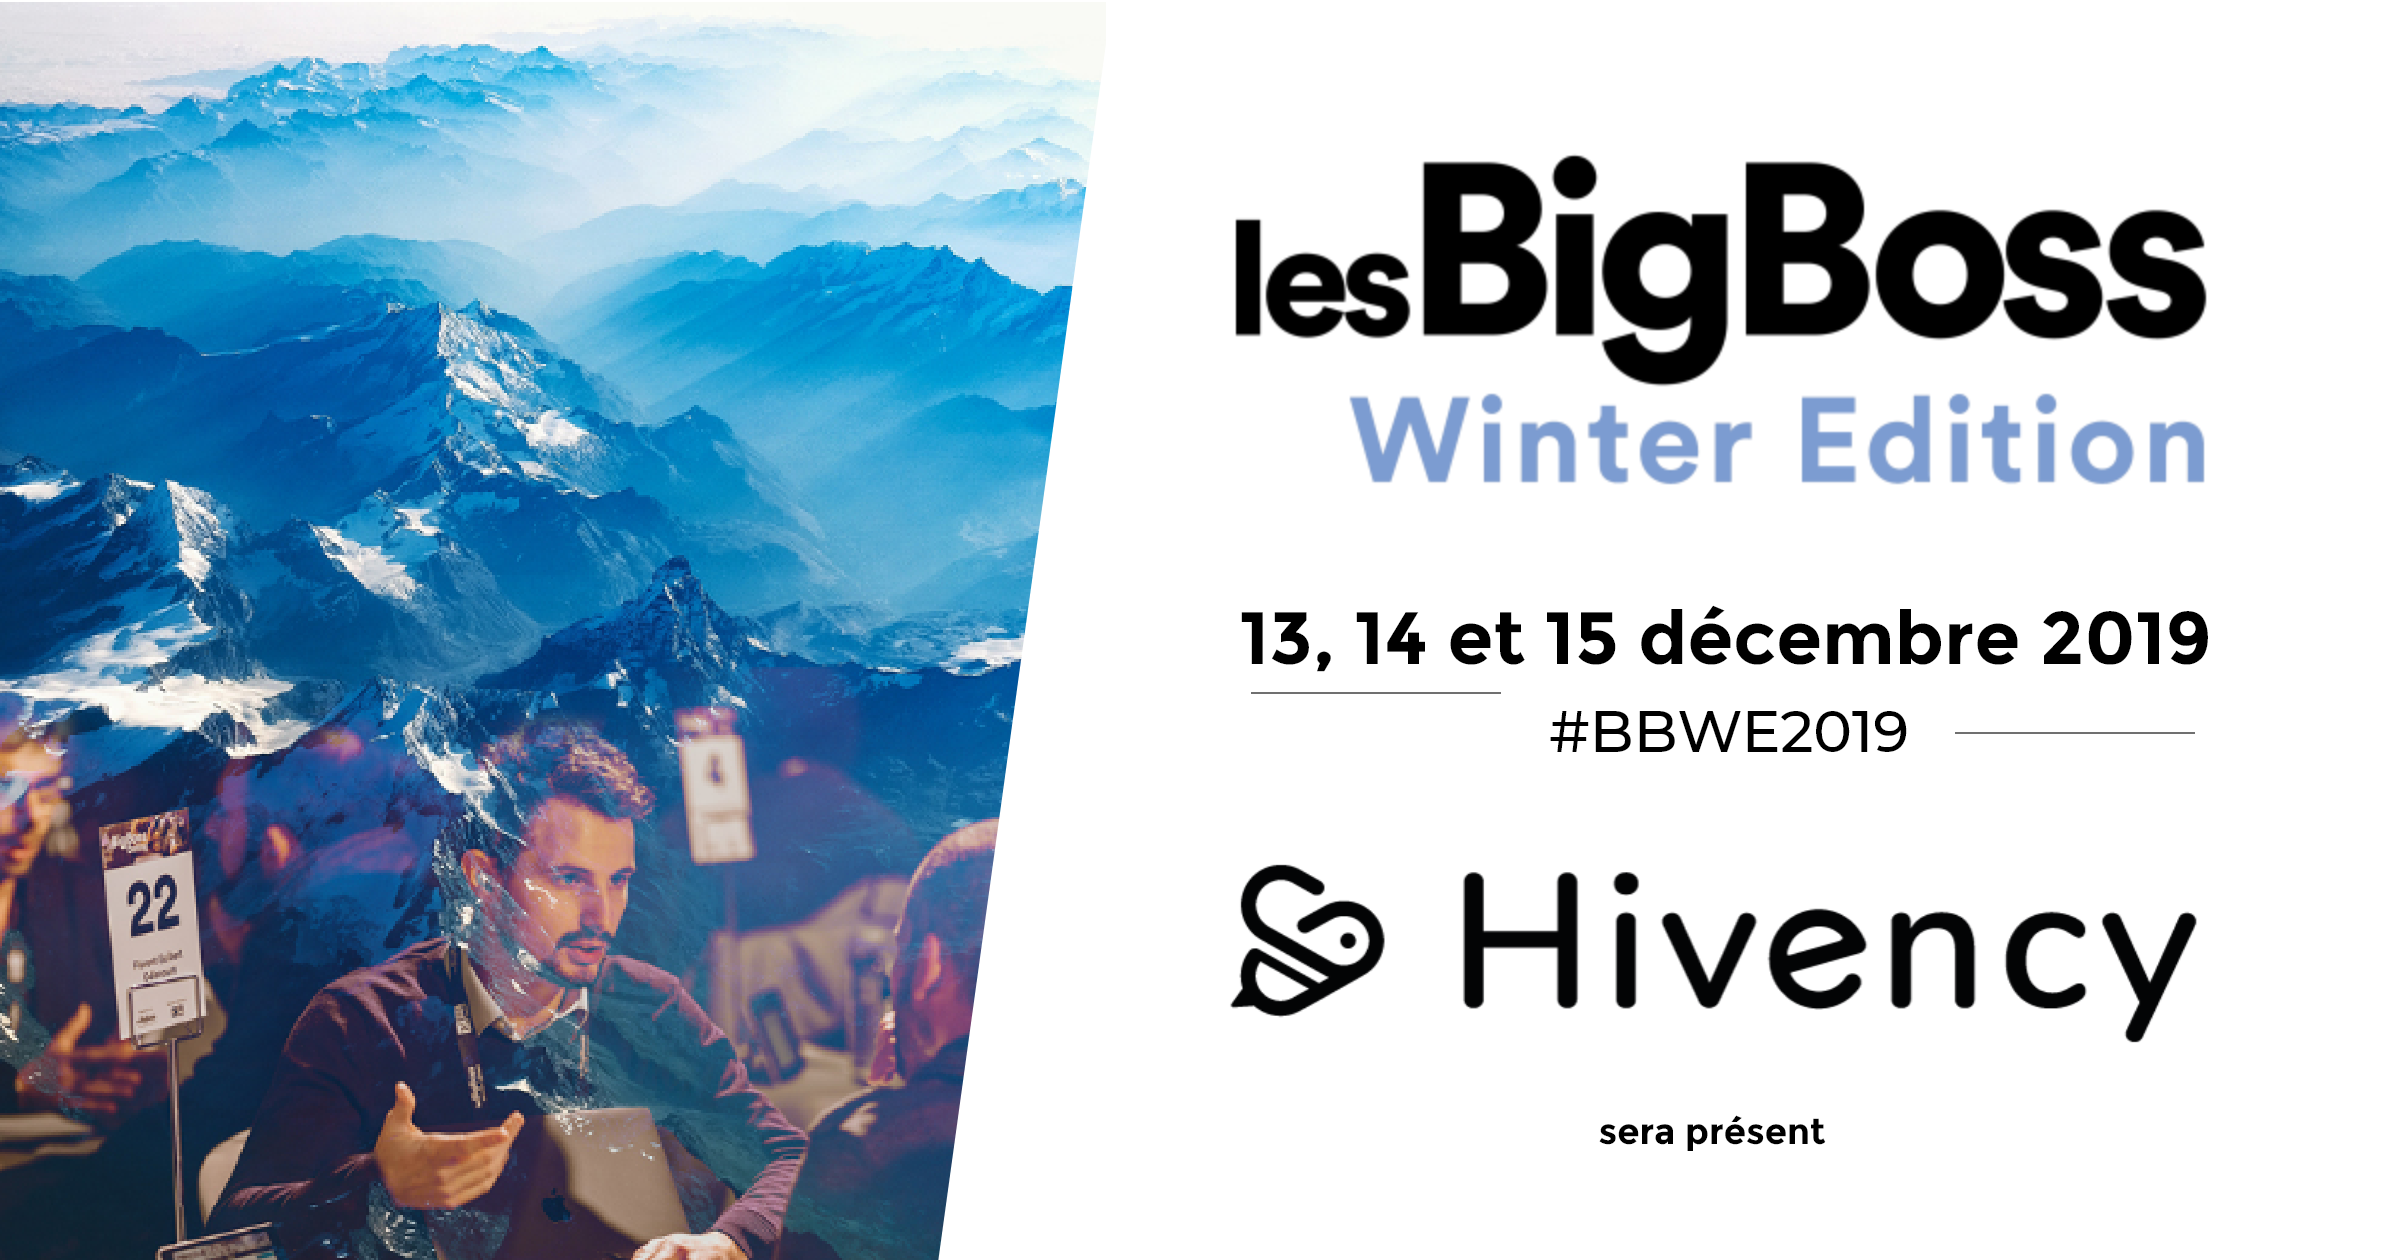 bigboss winter edition hivency